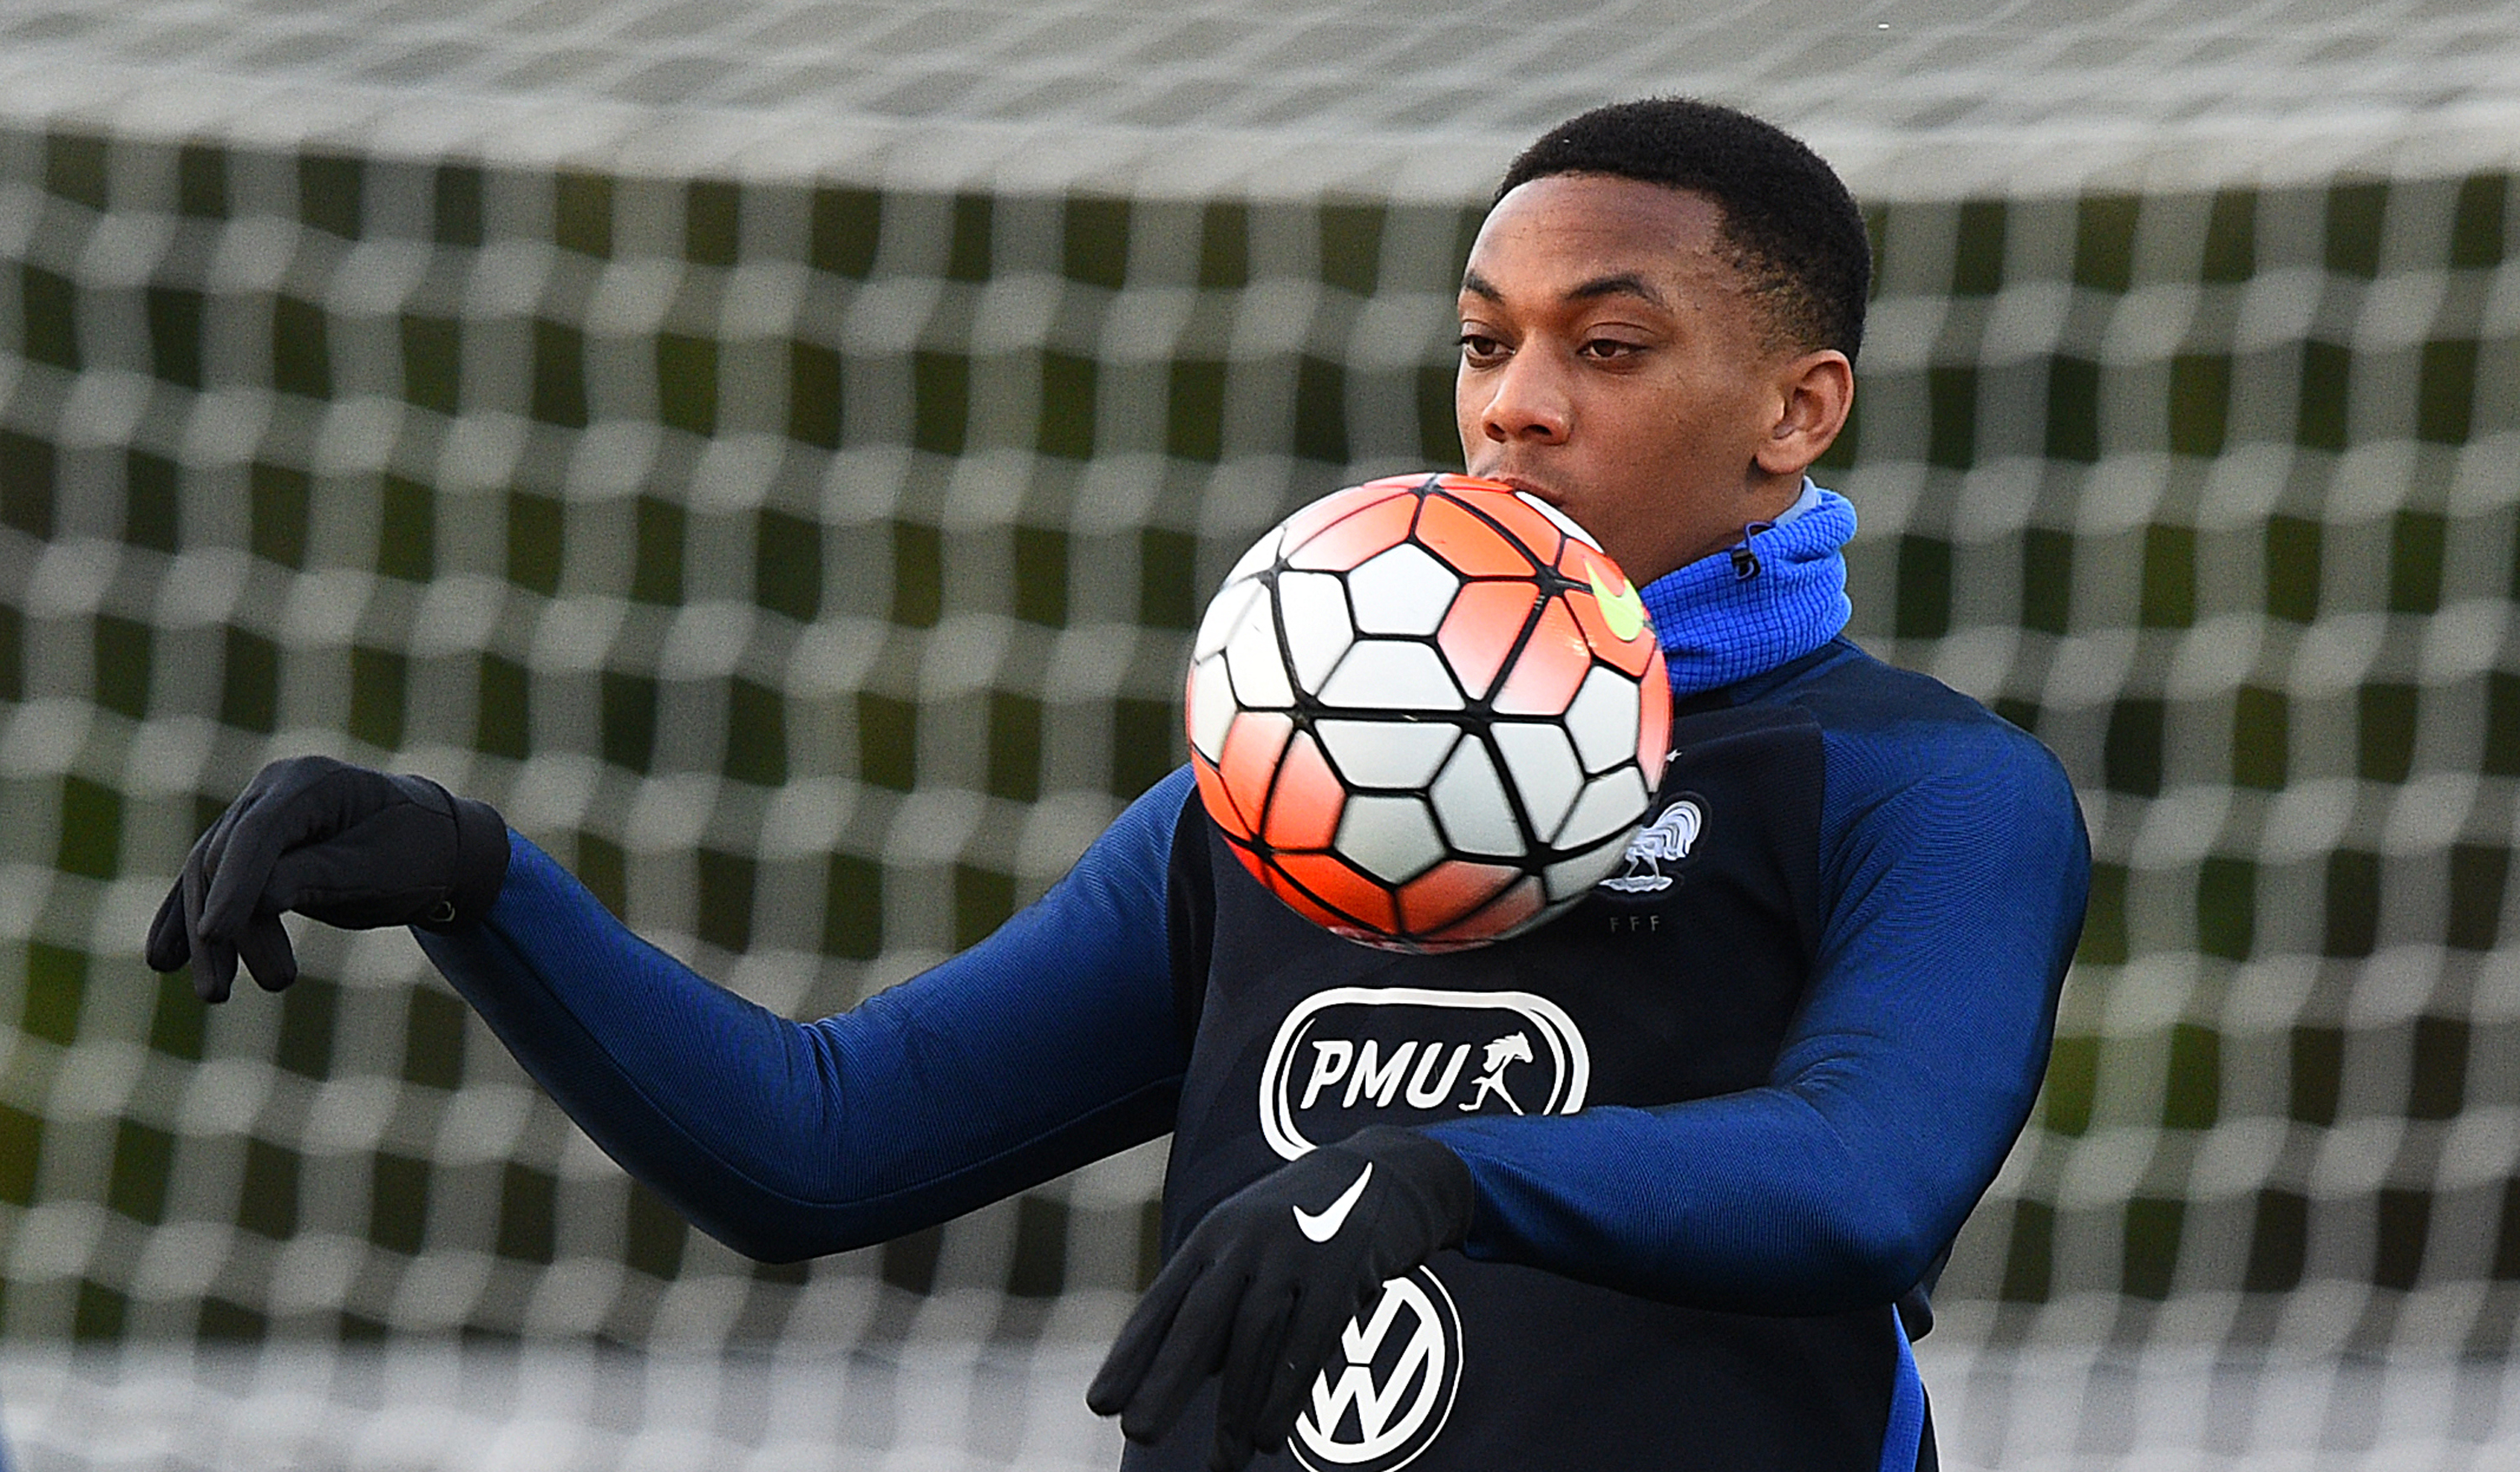 Why Manchester United's Anthony Martial is on Real Madrid's transfer radar